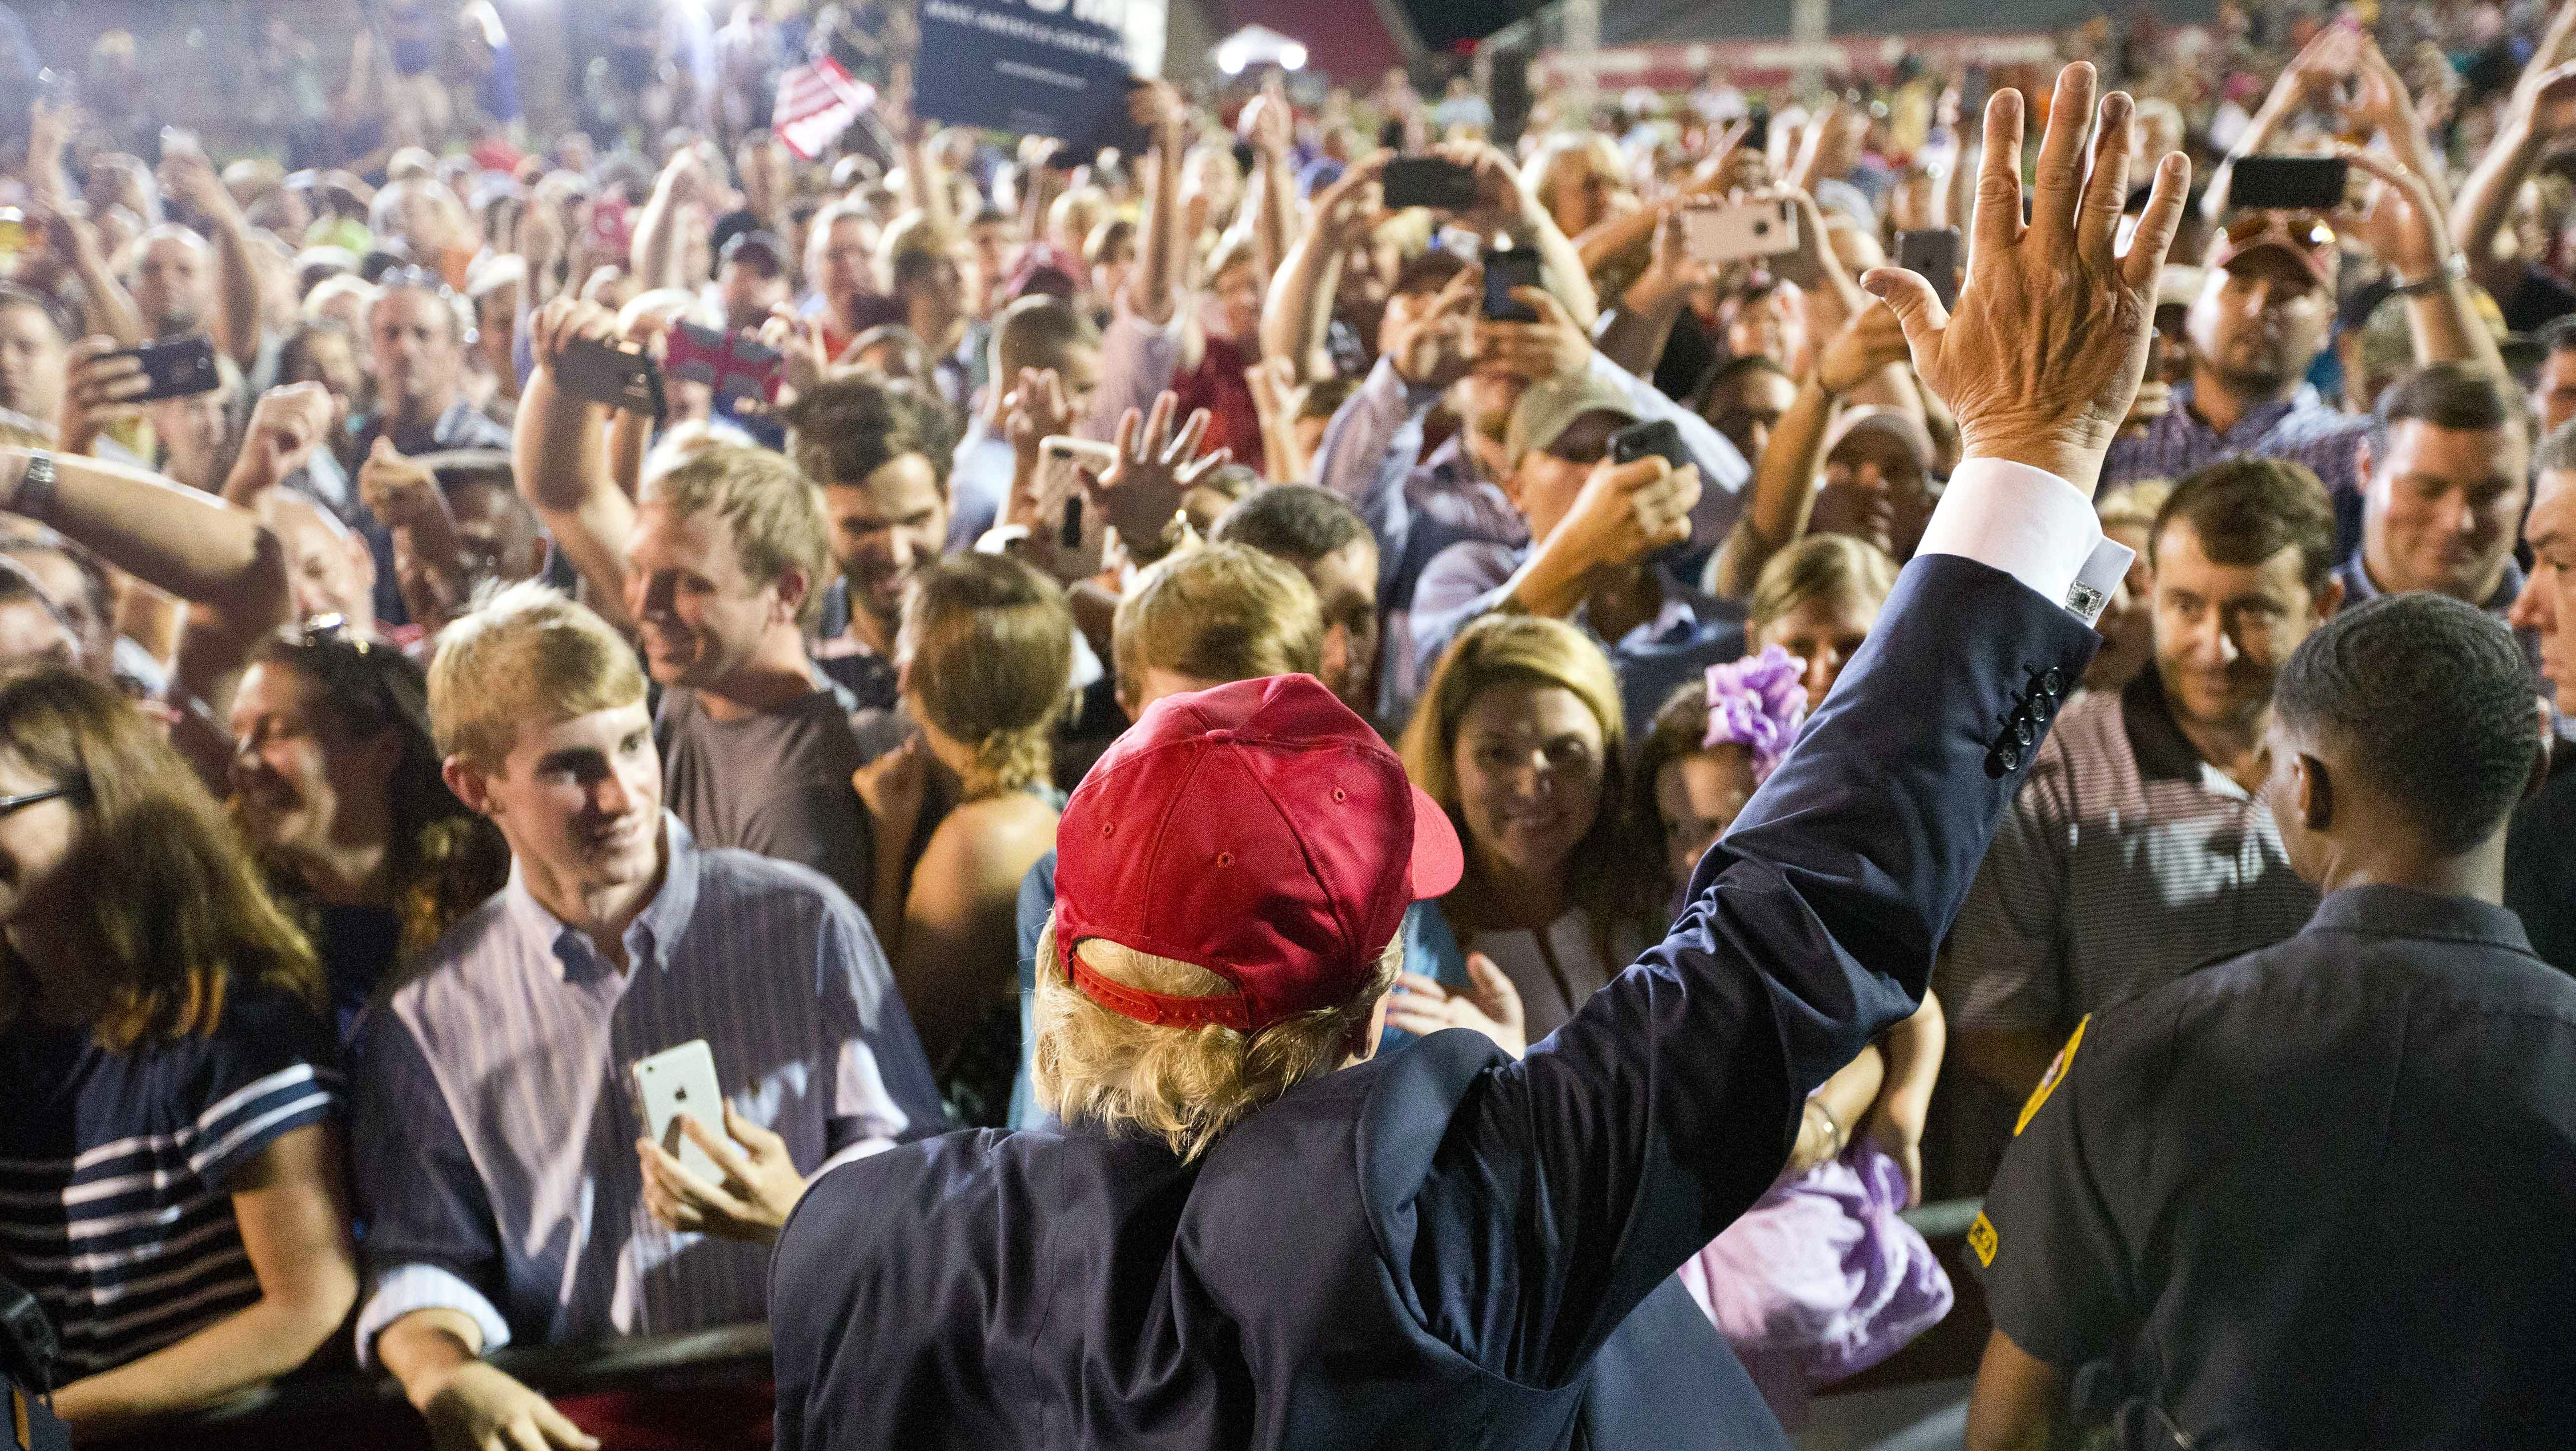 Republican presidential candidate Donald Trump waves to the crowd during a campaign pep rally, Friday, Aug. 21, 2015, in Mobile, Ala.